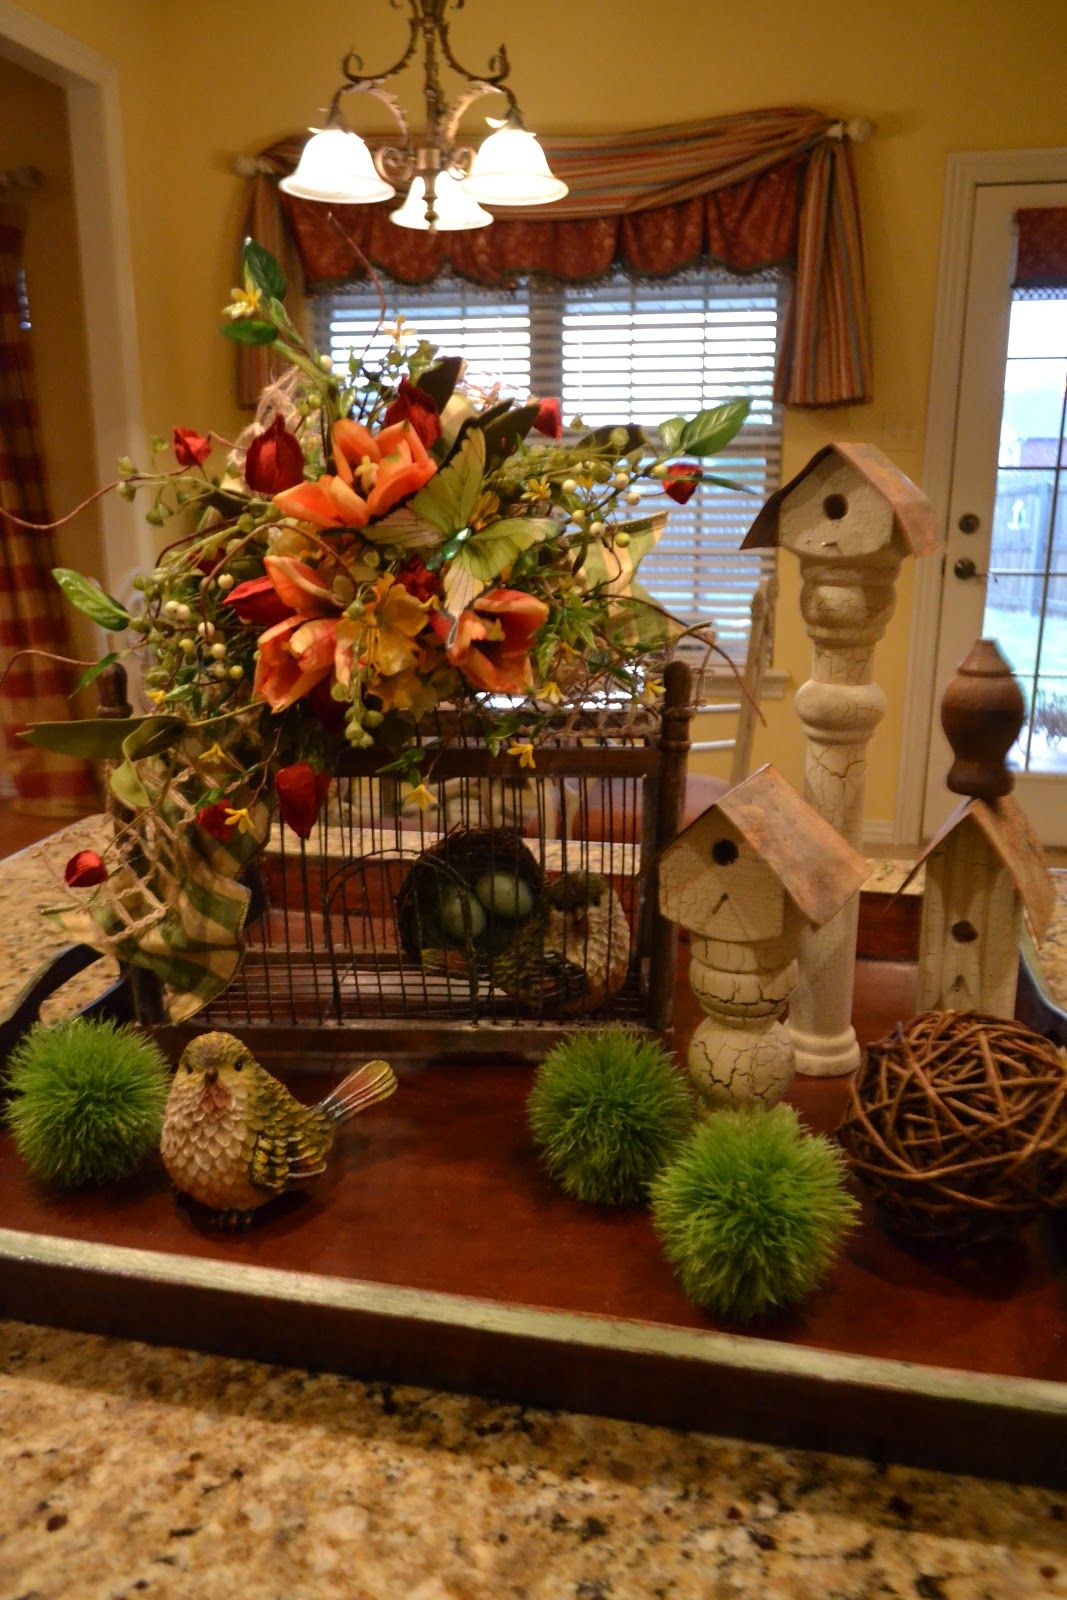 Pin By Sheri Wx On Display Style In 2020 Decor Fall